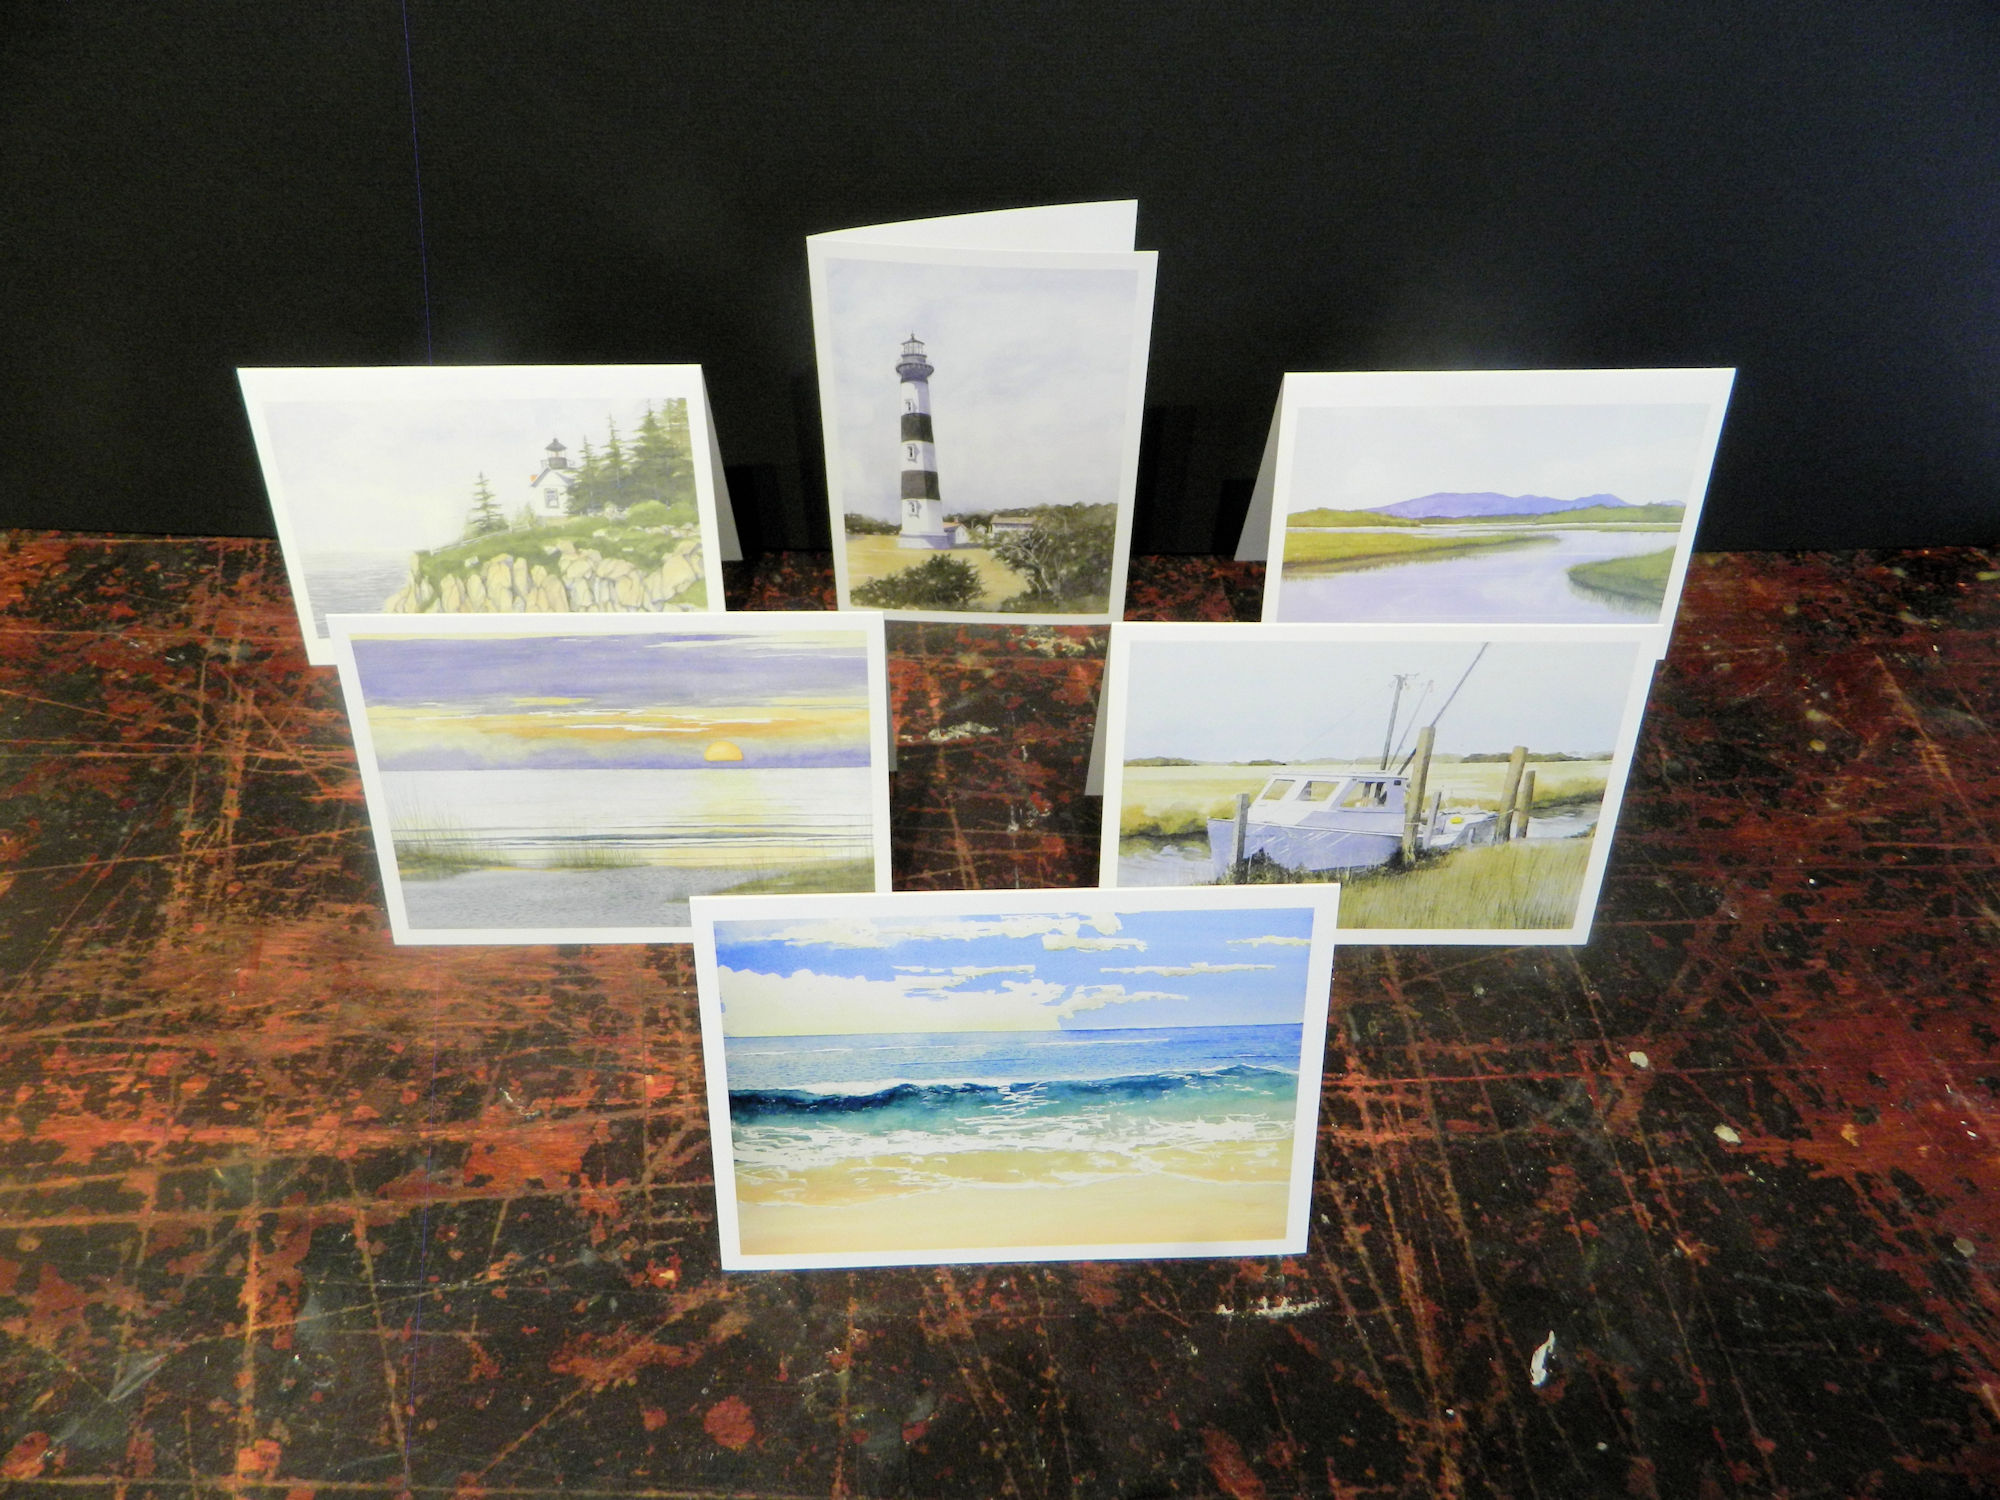 Notecards in this pack: Translucence | Evening Sun | Outer Banks | Bass Harbor Light | Bodie Light | Bass Harbor Inlet | 6-pack w/envelopes $18